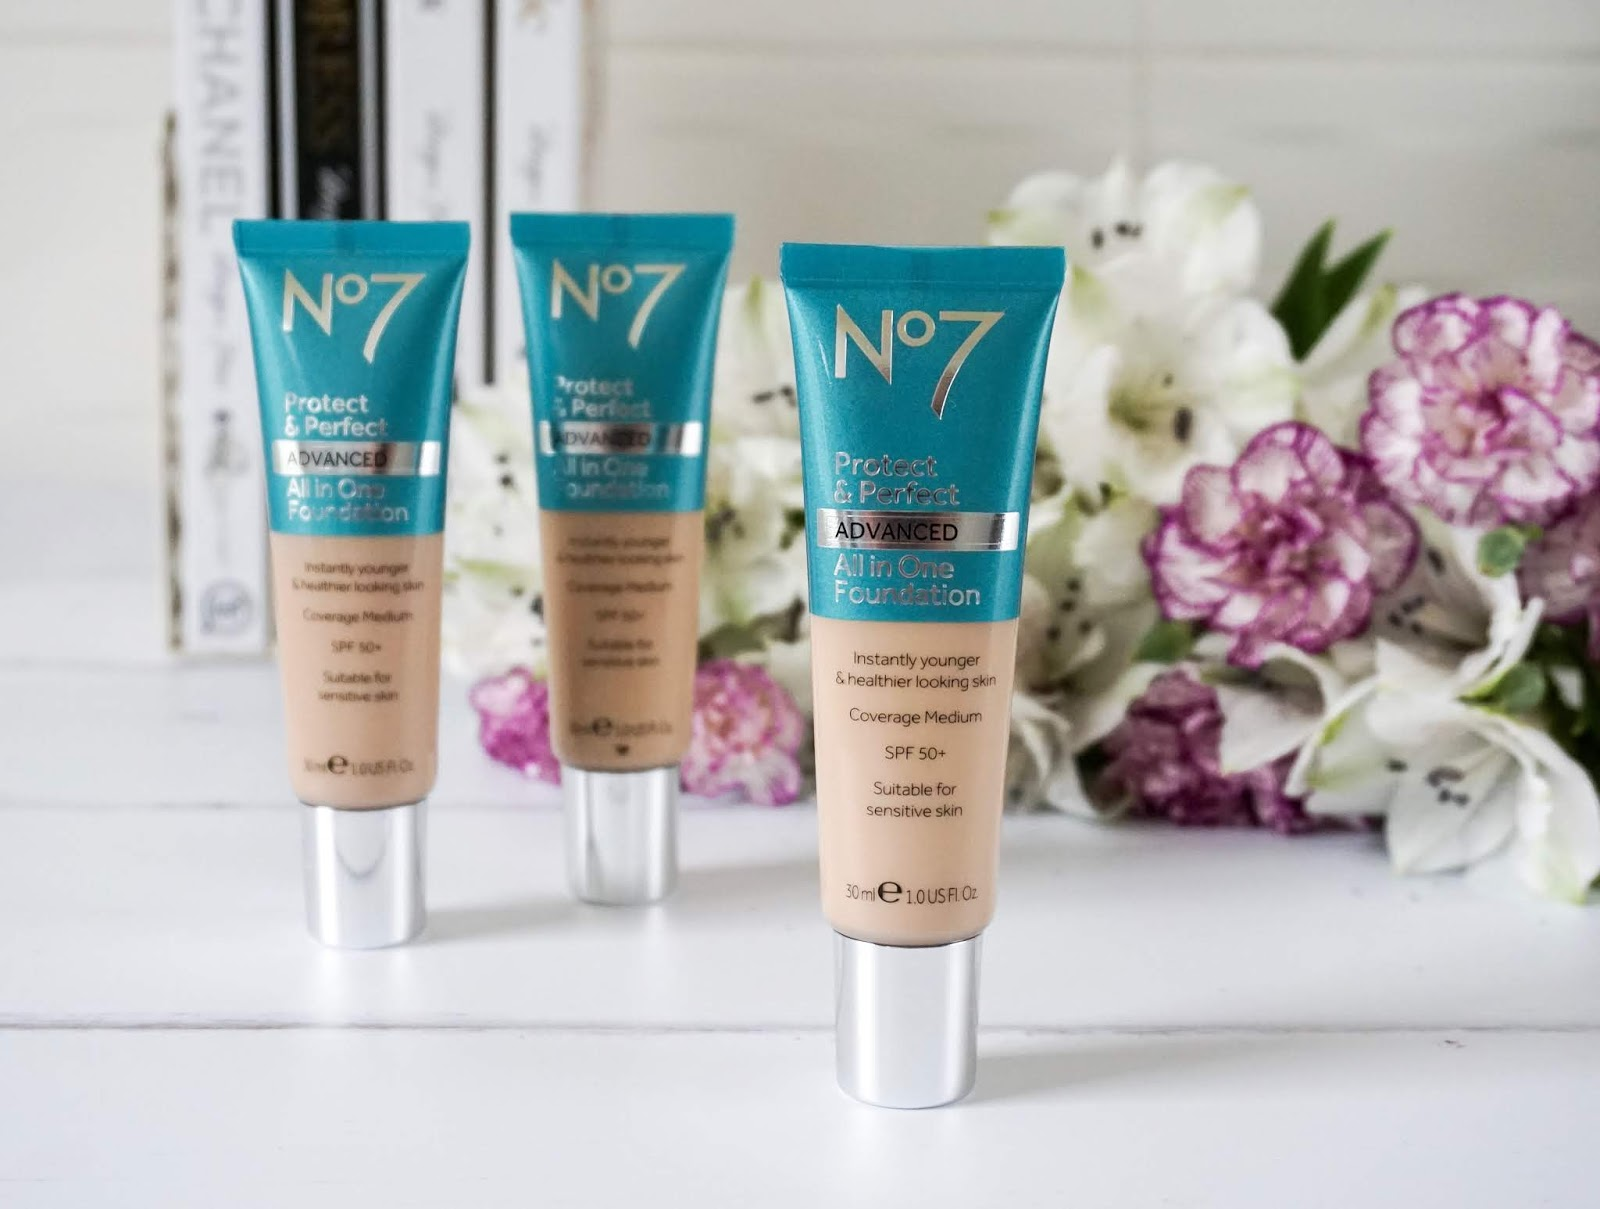 No7 Protect & Perfect All In One foundation